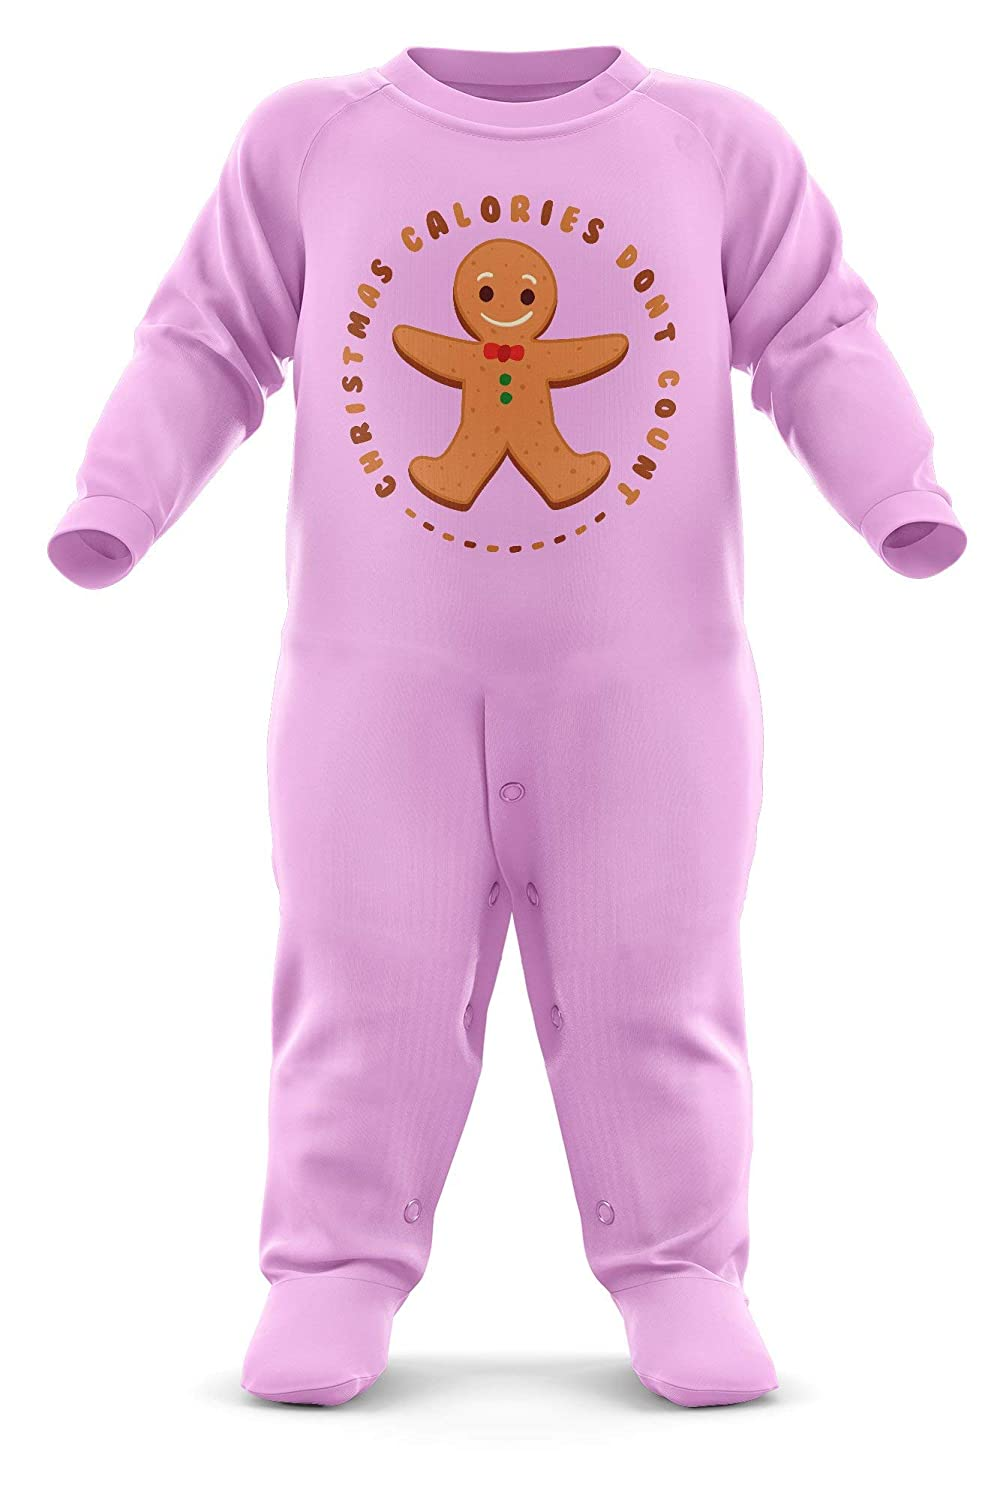 FunkyShirt Christmas Calories Dont Count Baby Romper Suit Gingerbread Man First Xmas Present Baby Grow Newborn Romper Suit